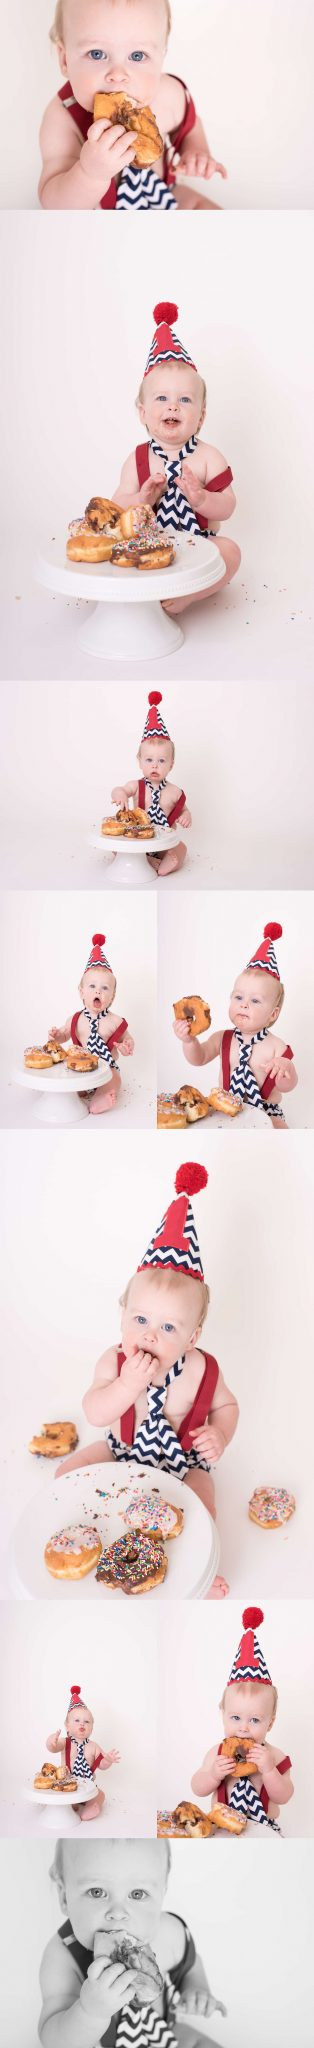 Camden Demerly Is One | A Donut Smash Cake | Luminant Photography | Lafayette, Indiana Photographer | Lafayette, Indiana Family Photographer